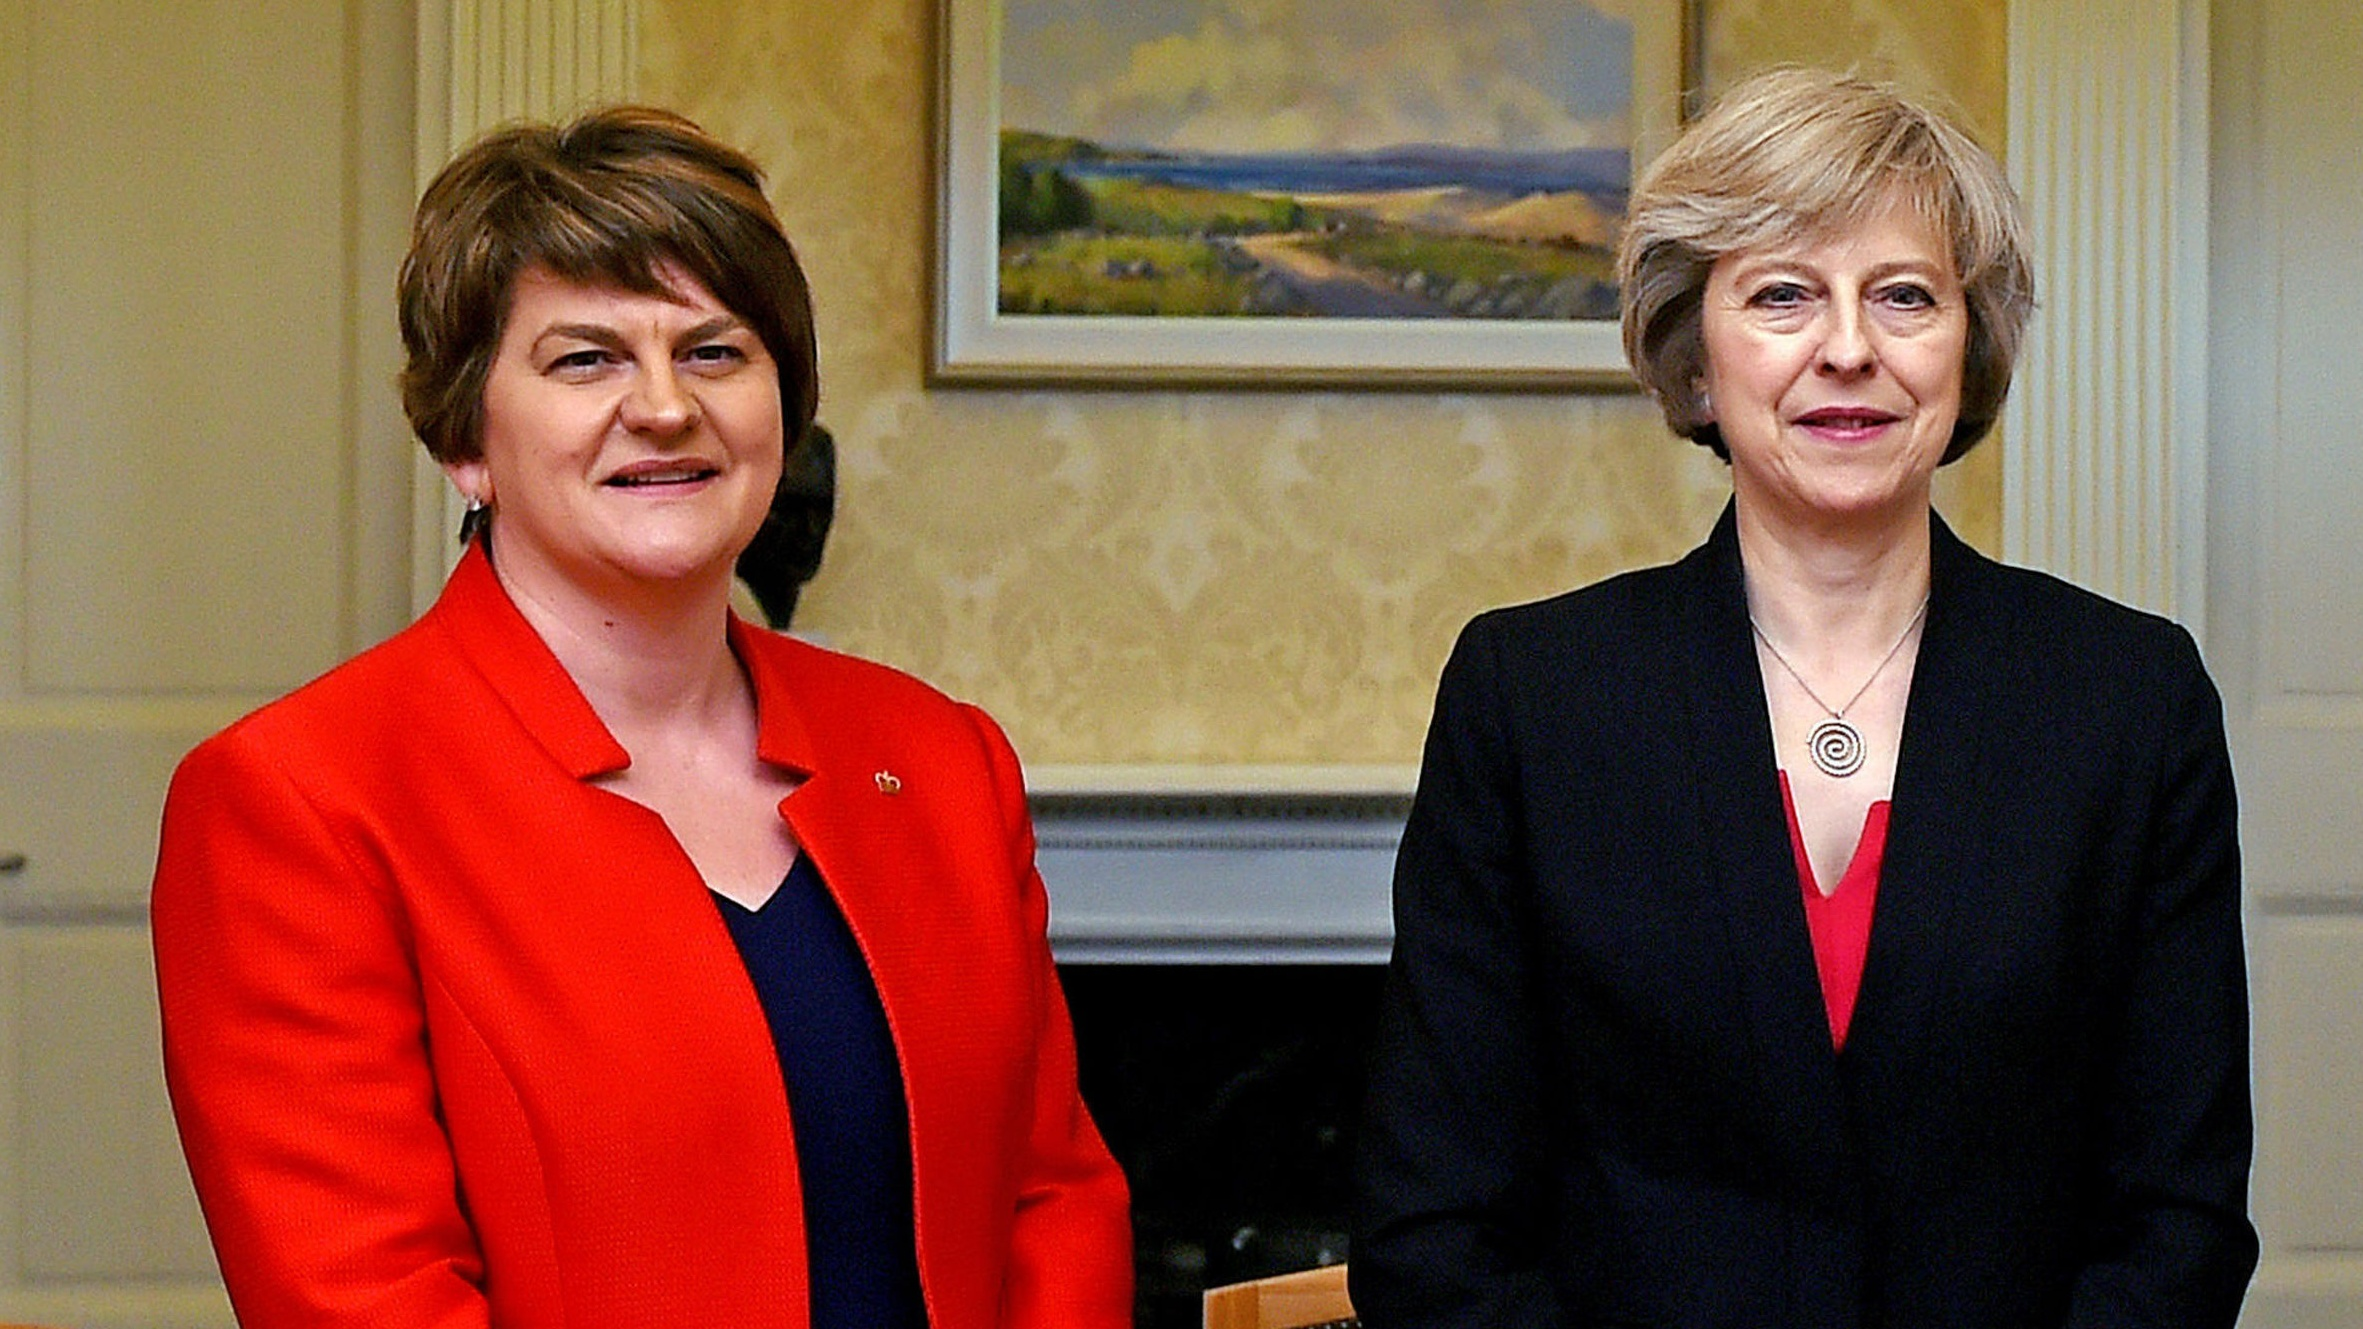 Theresa May continues talks with DUP to prop up British government